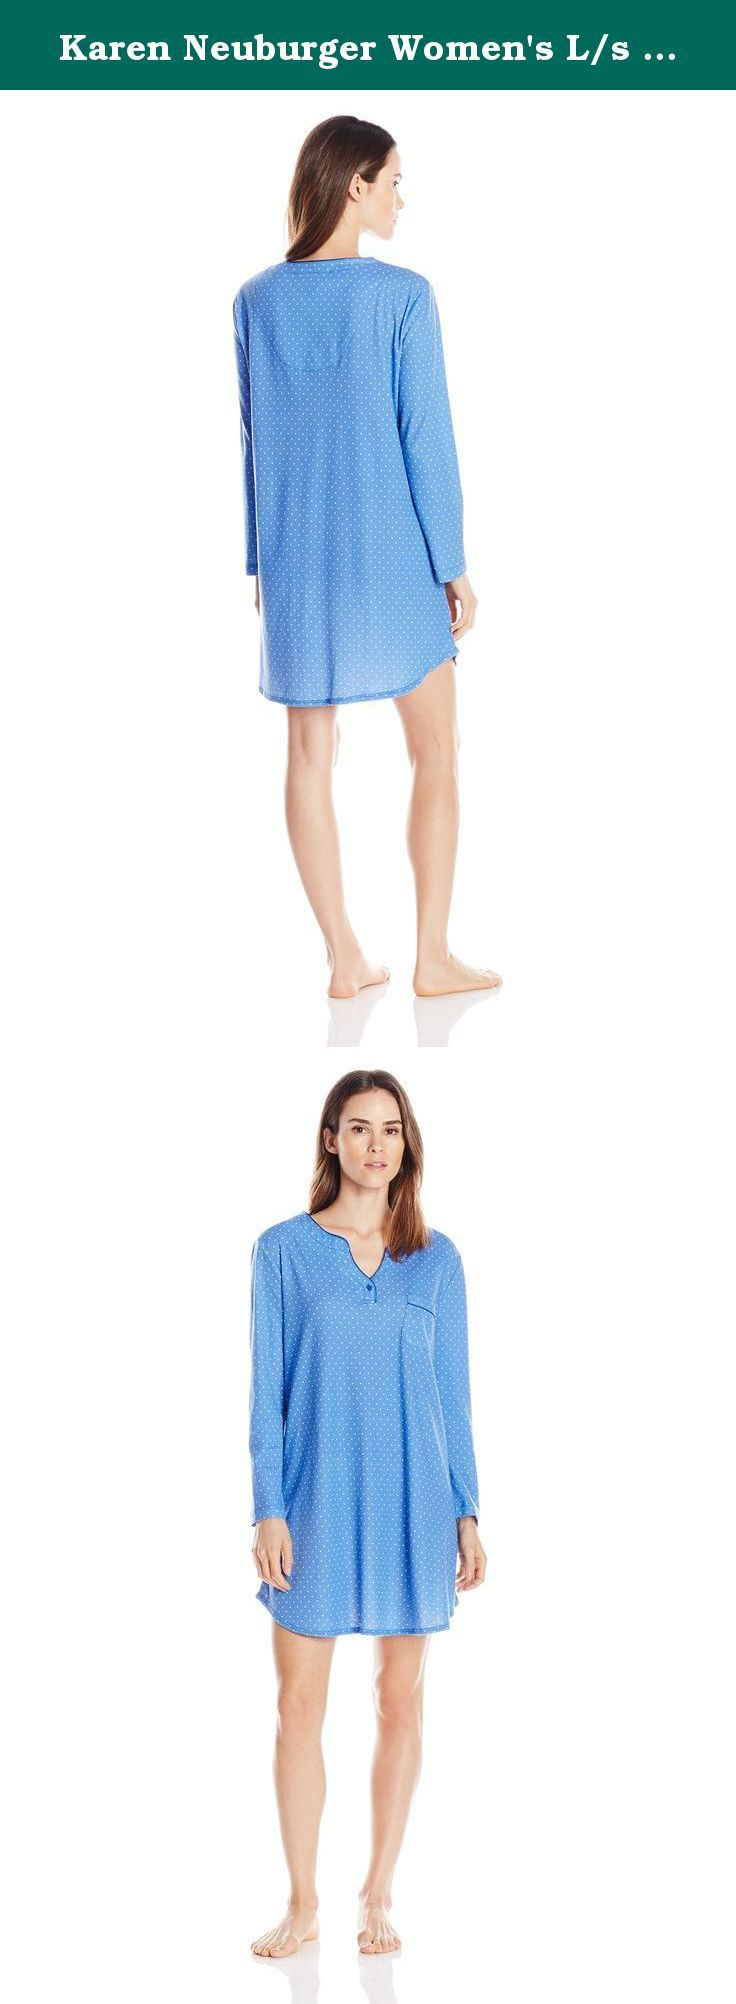 Karen Neuburger Women's L/s Pullover Nightshirt, Maroon Dot/Olympia Blue, Small. You'll want to lounge around in these pajamas all day Karen Neuburger sleepwear starts with light weight, cozy fabric (it's the softest we could find) and an easy fit. Next we add unique details-such as an embroidered pocket or fun contrast piping-to make these pajamas simply your favorite. Karen Neuburger started the all-day sleepwear revolution by designing pajamas she wanted to stay in all day long, twenty...